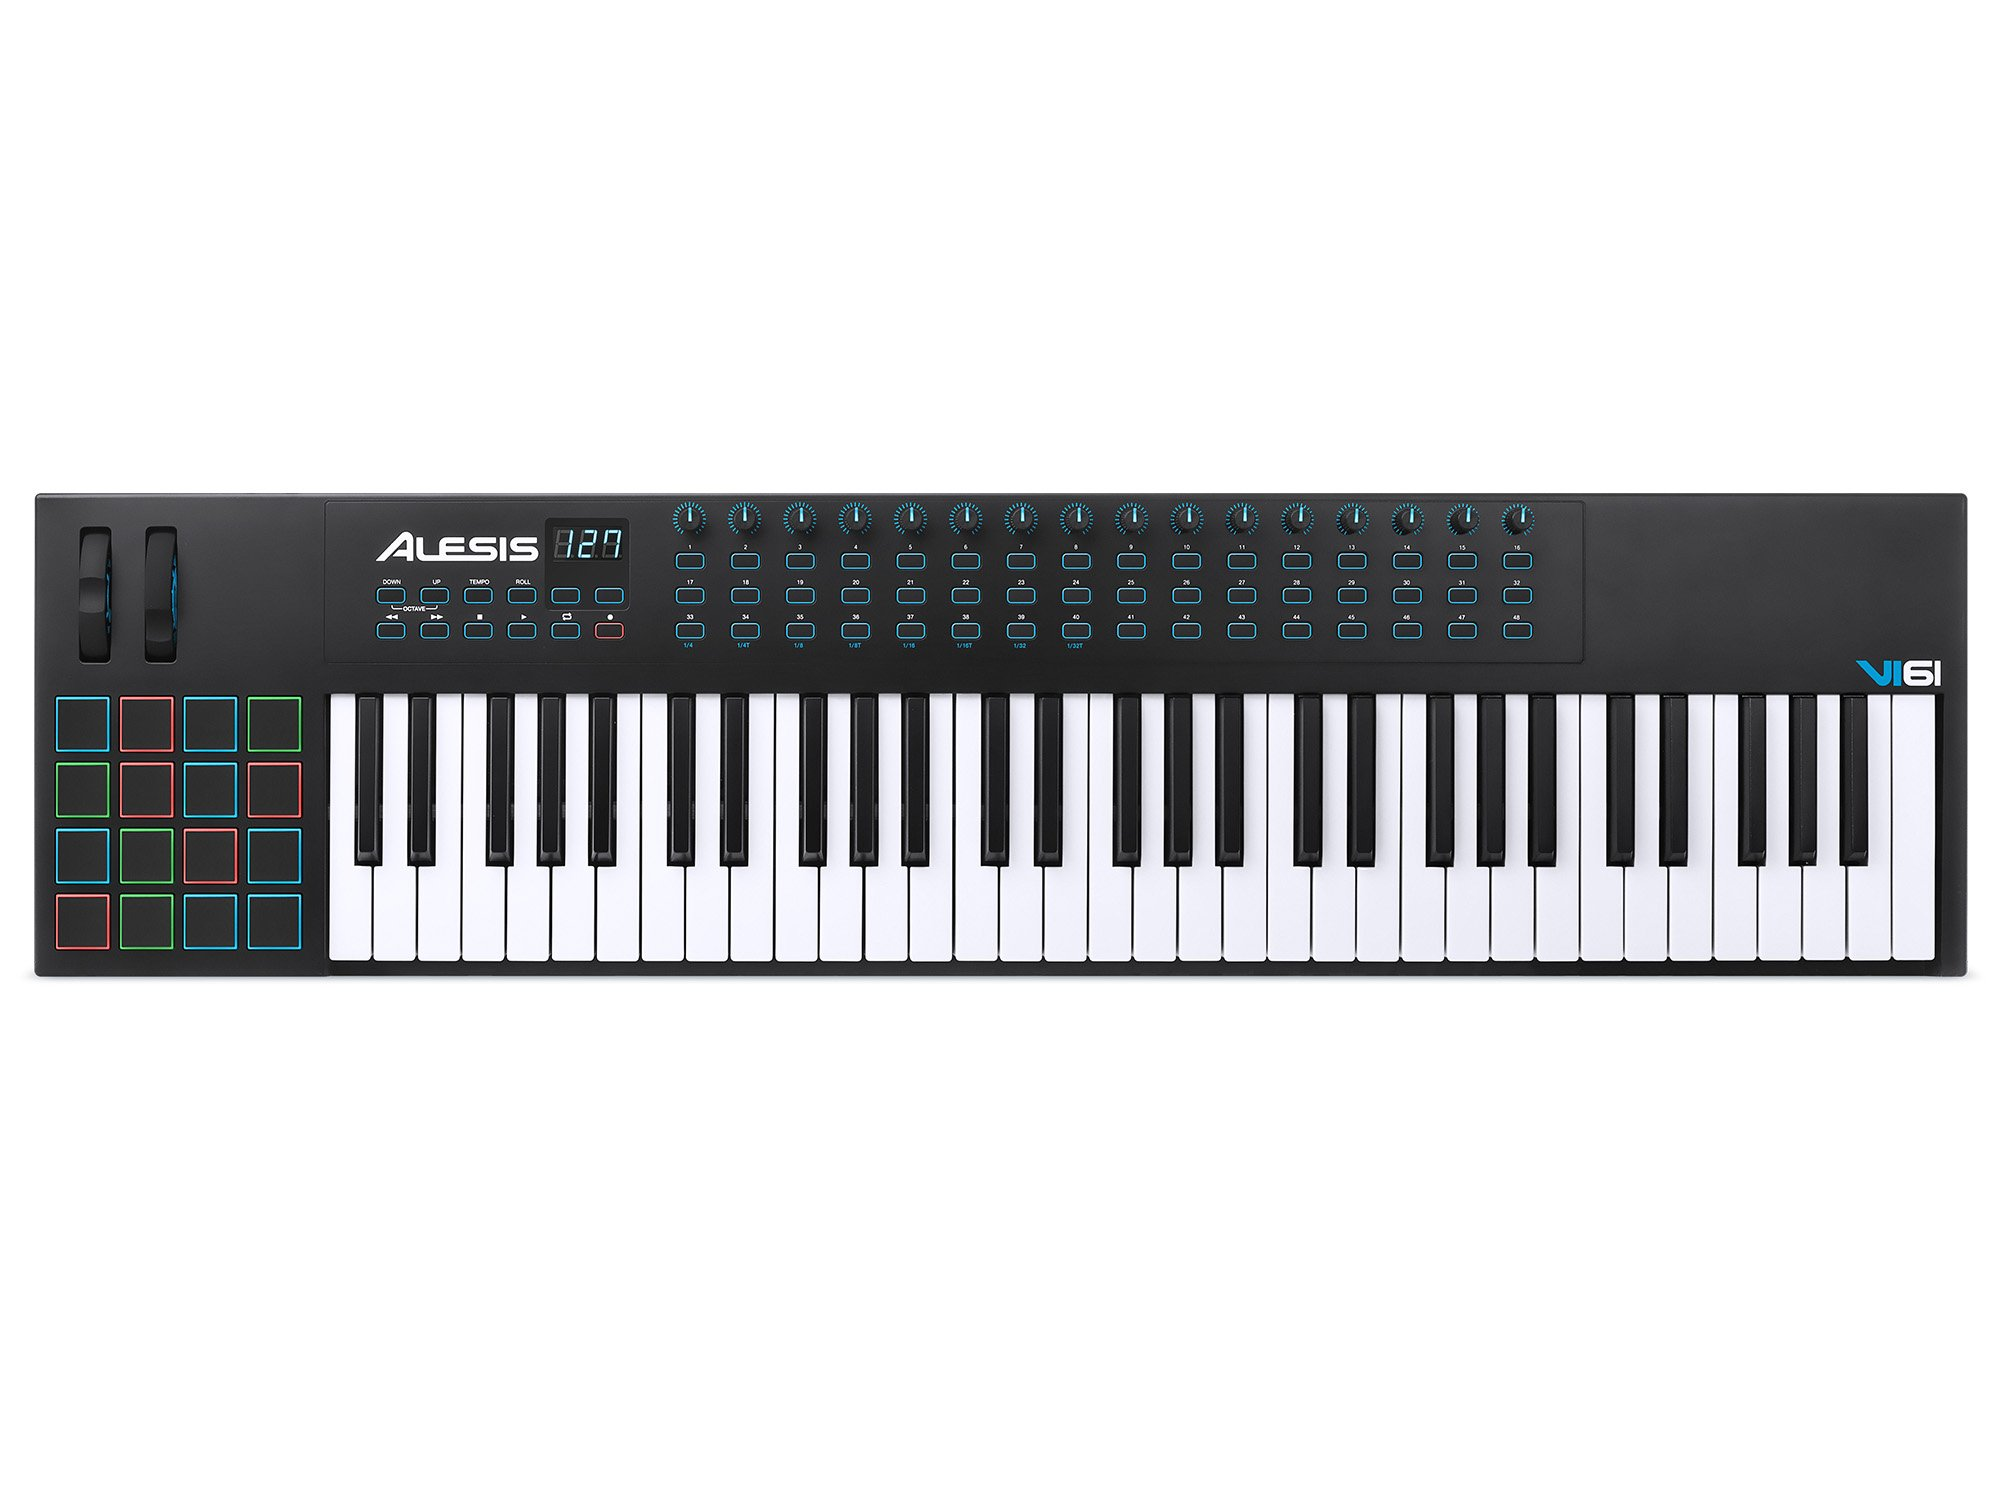 Alesis VI61 | Advanced 61-Key USB MIDI Keyboard & Drum Pad Controller (16 Pads / 16 Knobs / 48 Buttons) by Alesis